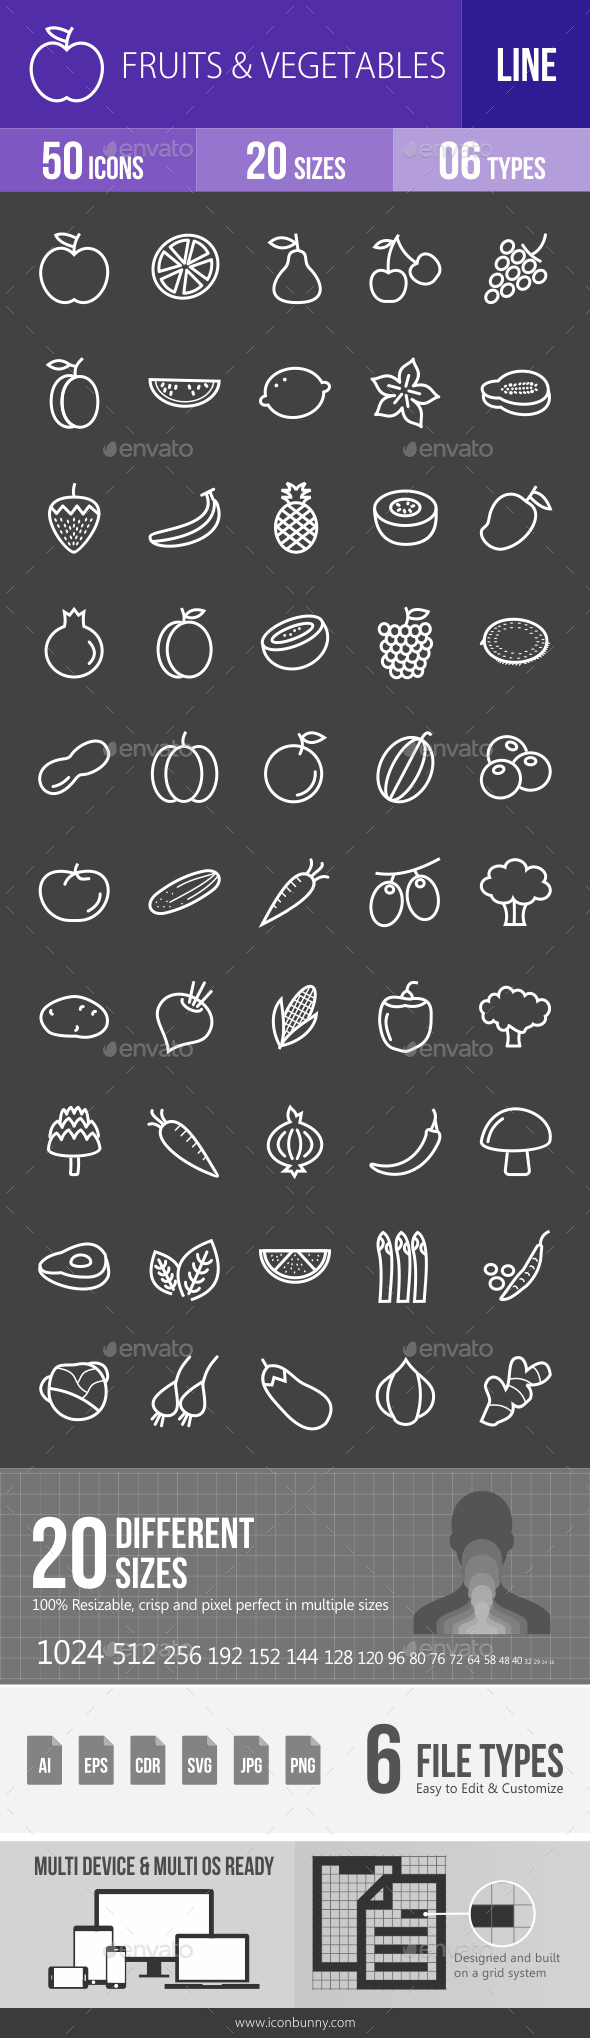 Fruits & Vegetables Line Inverted Icons - Icons